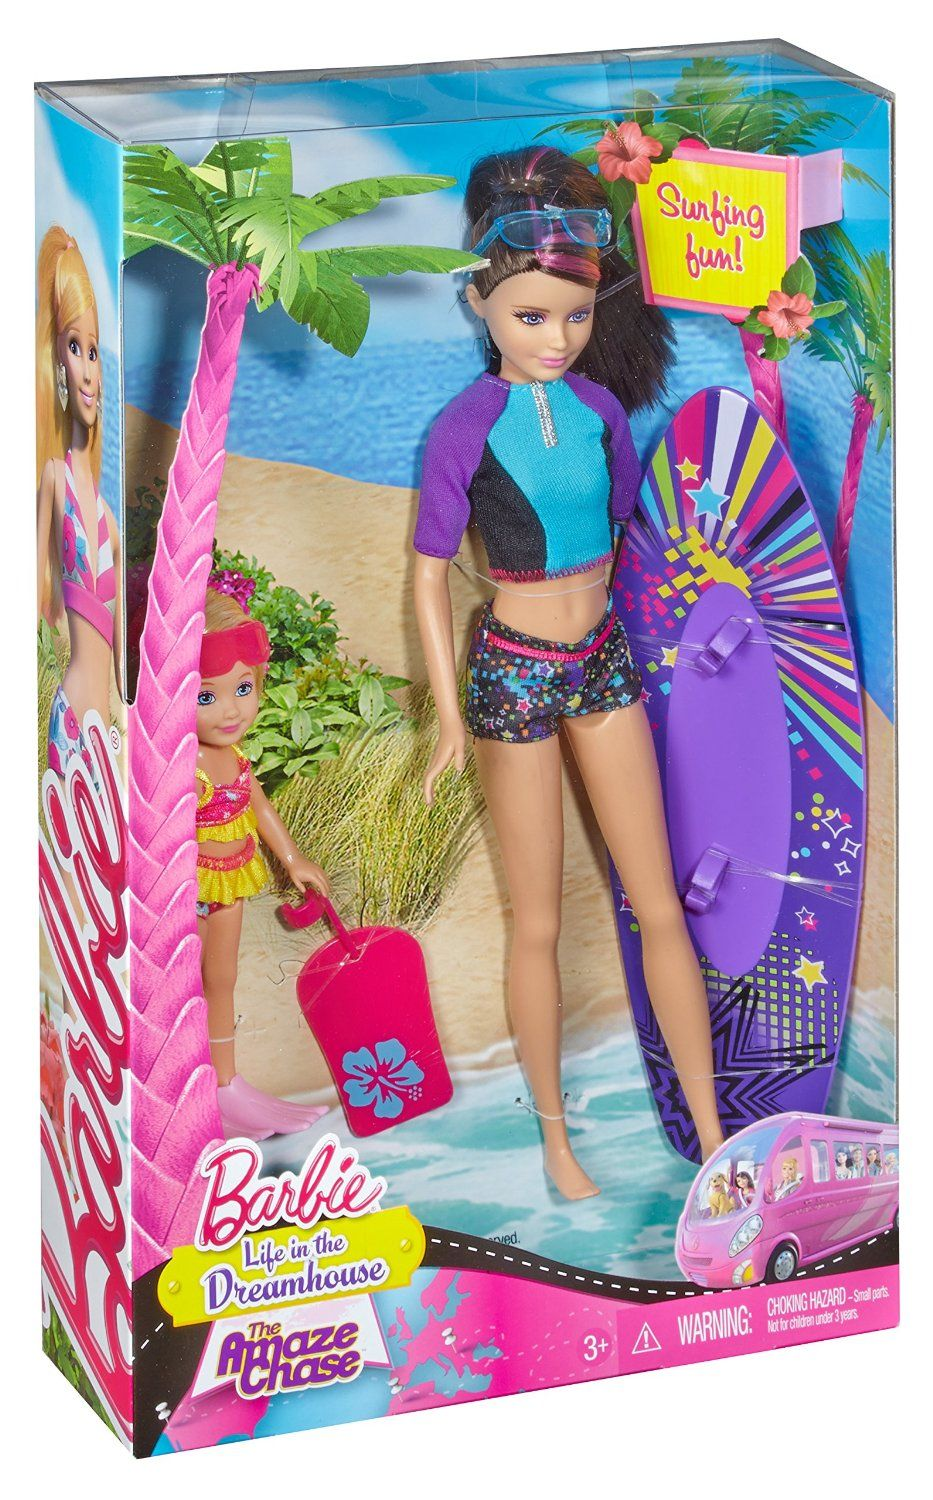 Amazon Com Barbie Life In The Dreamhouse The Amaze Chase Surfing